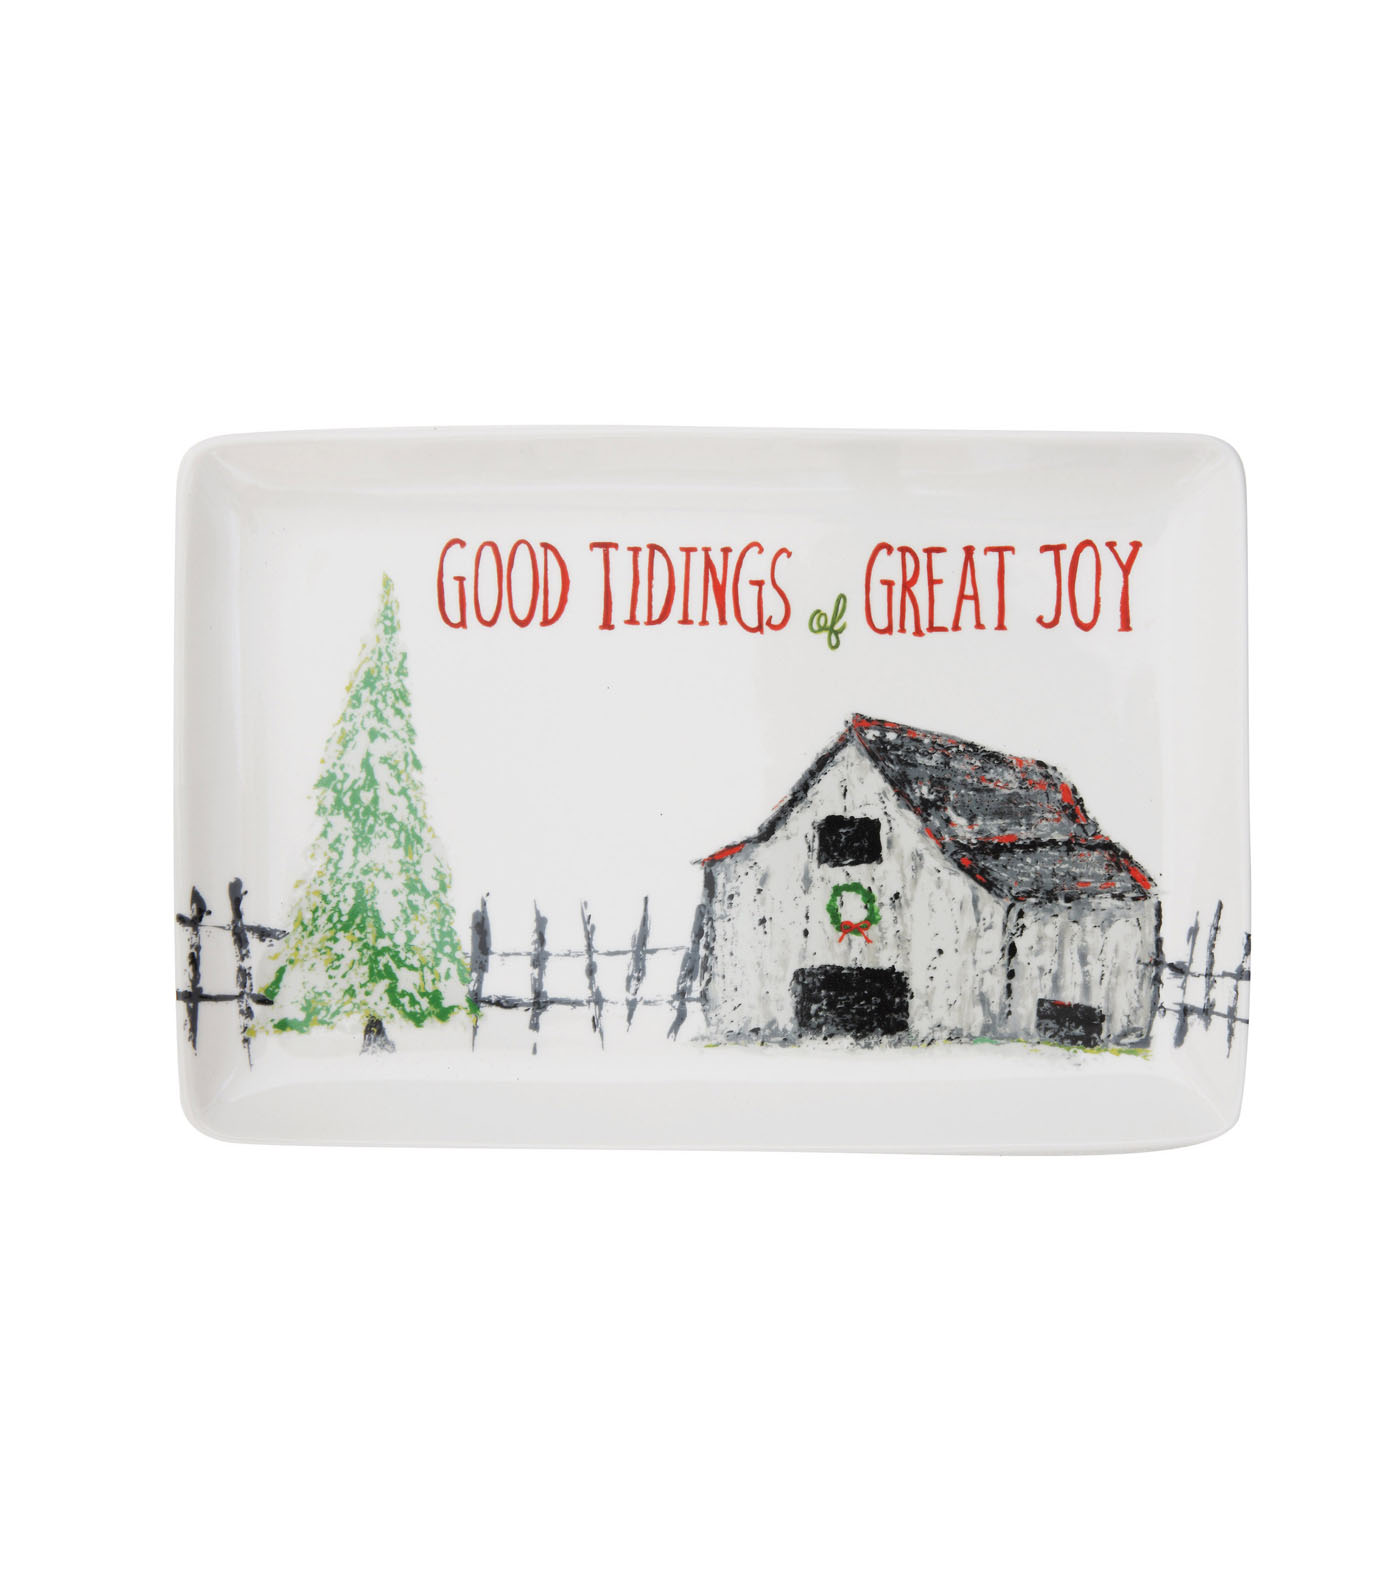 Christmas Serving Plate-Good Tidings of Great Joy